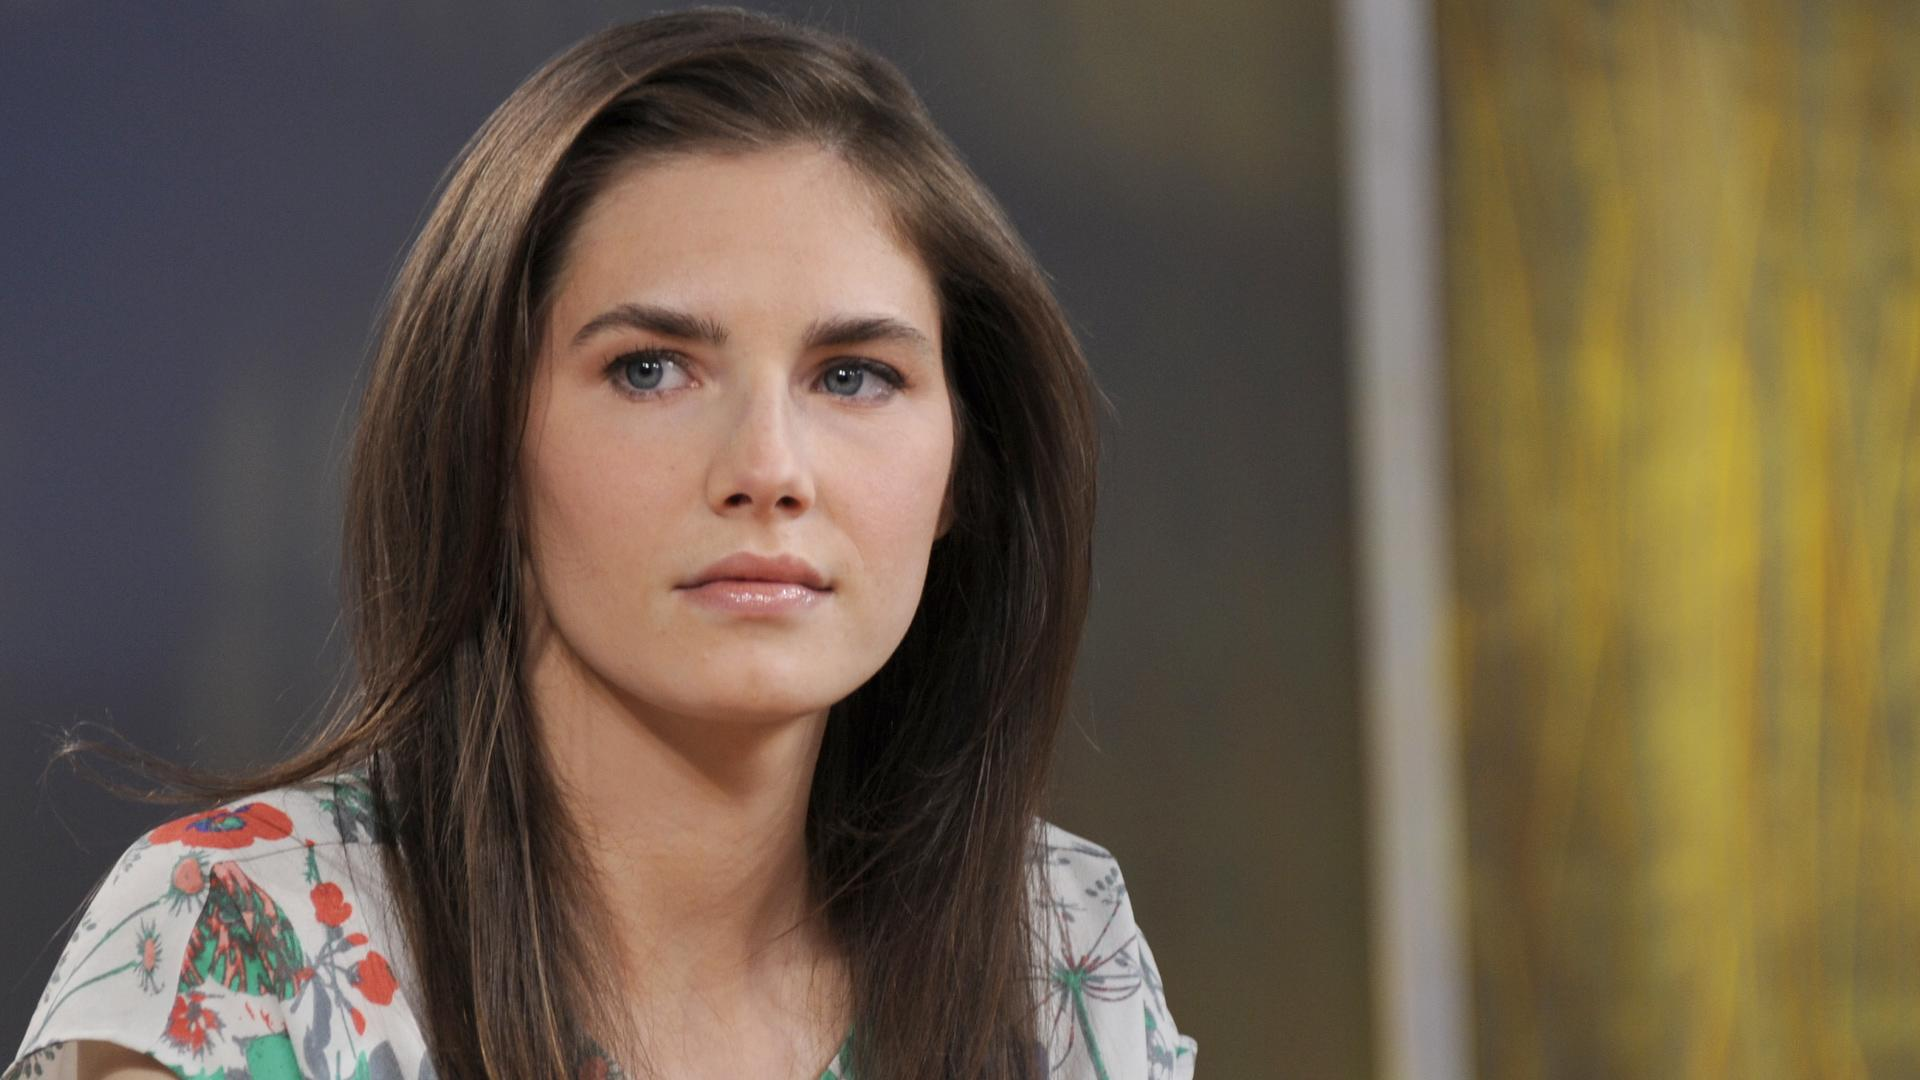 amanda knox Italy's supreme court has overturned the murder conviction of american amanda knox and her former boyfriend in the 2007 slaying of her british roommate.